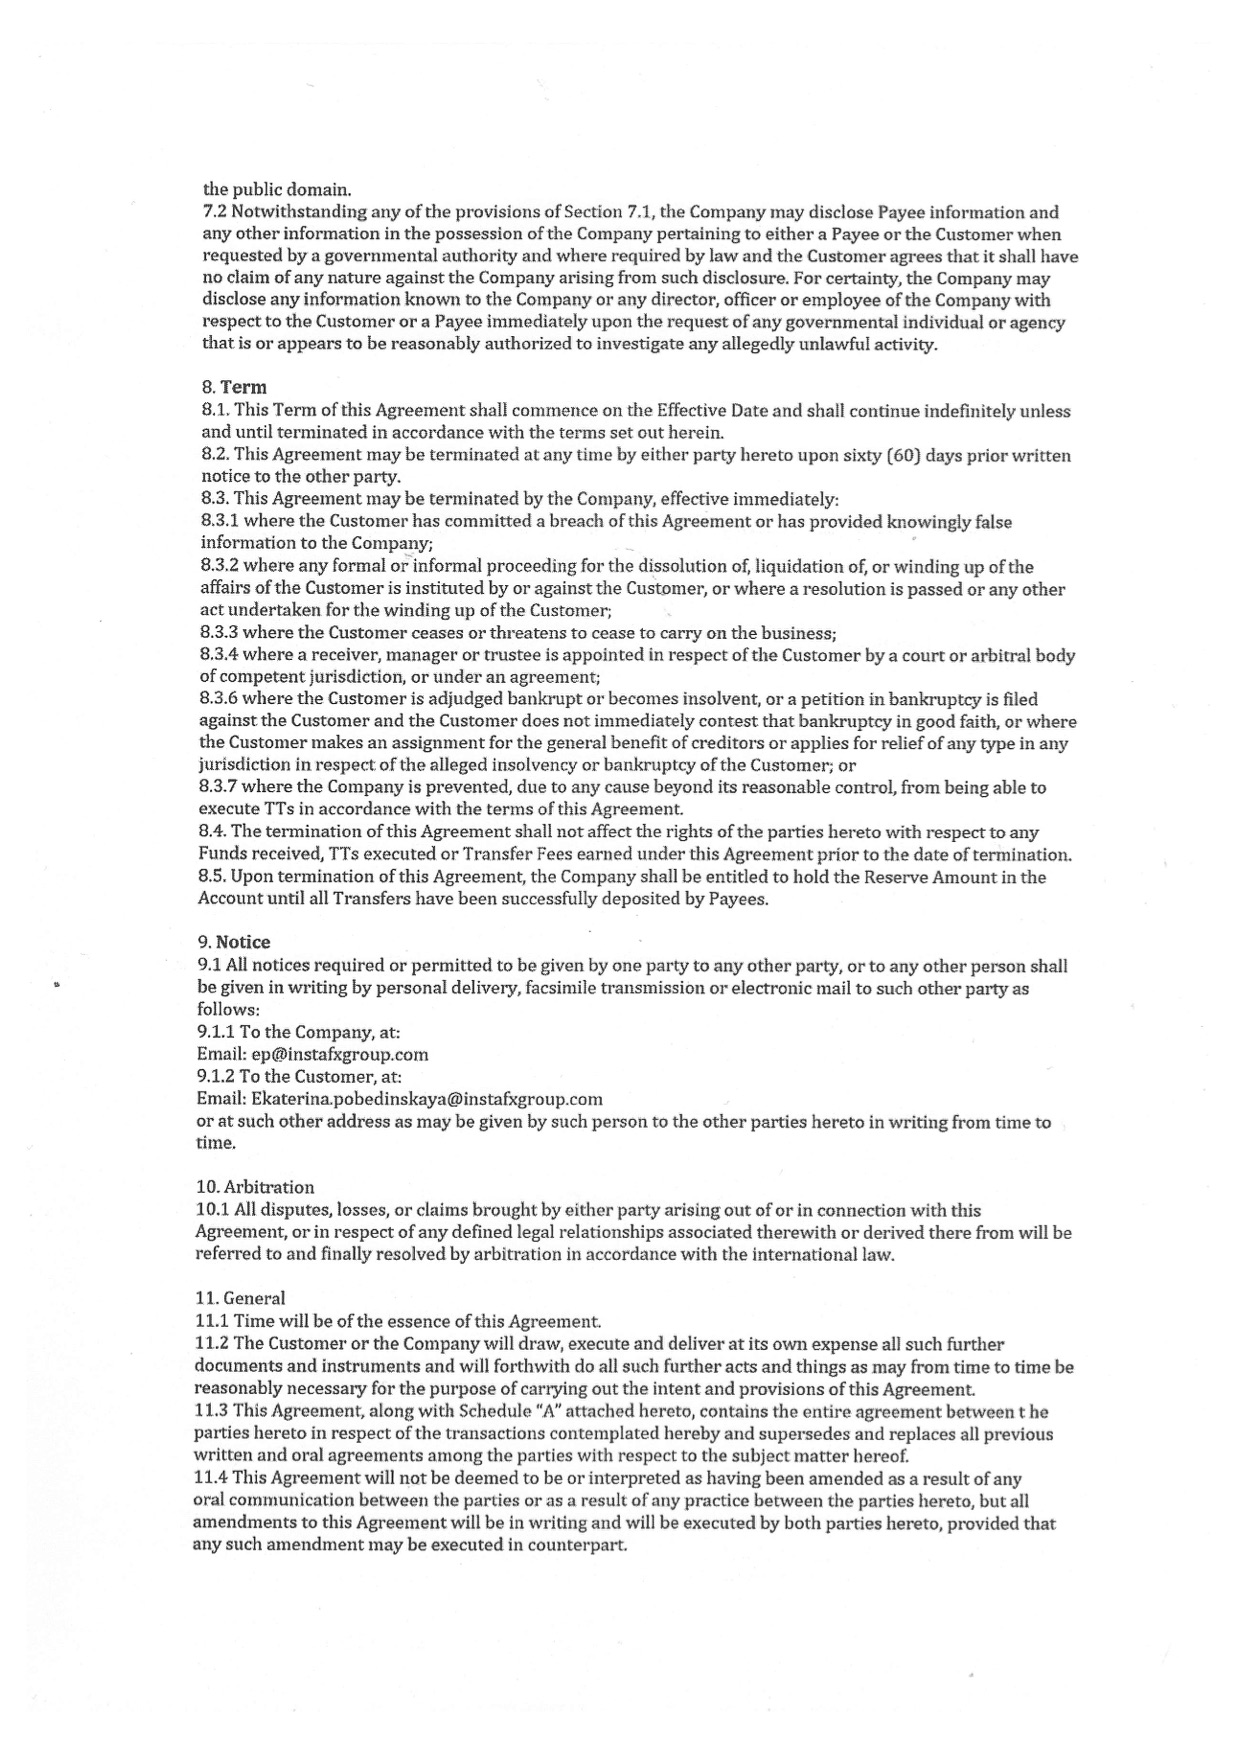 IT IH Contract page 4.jpg